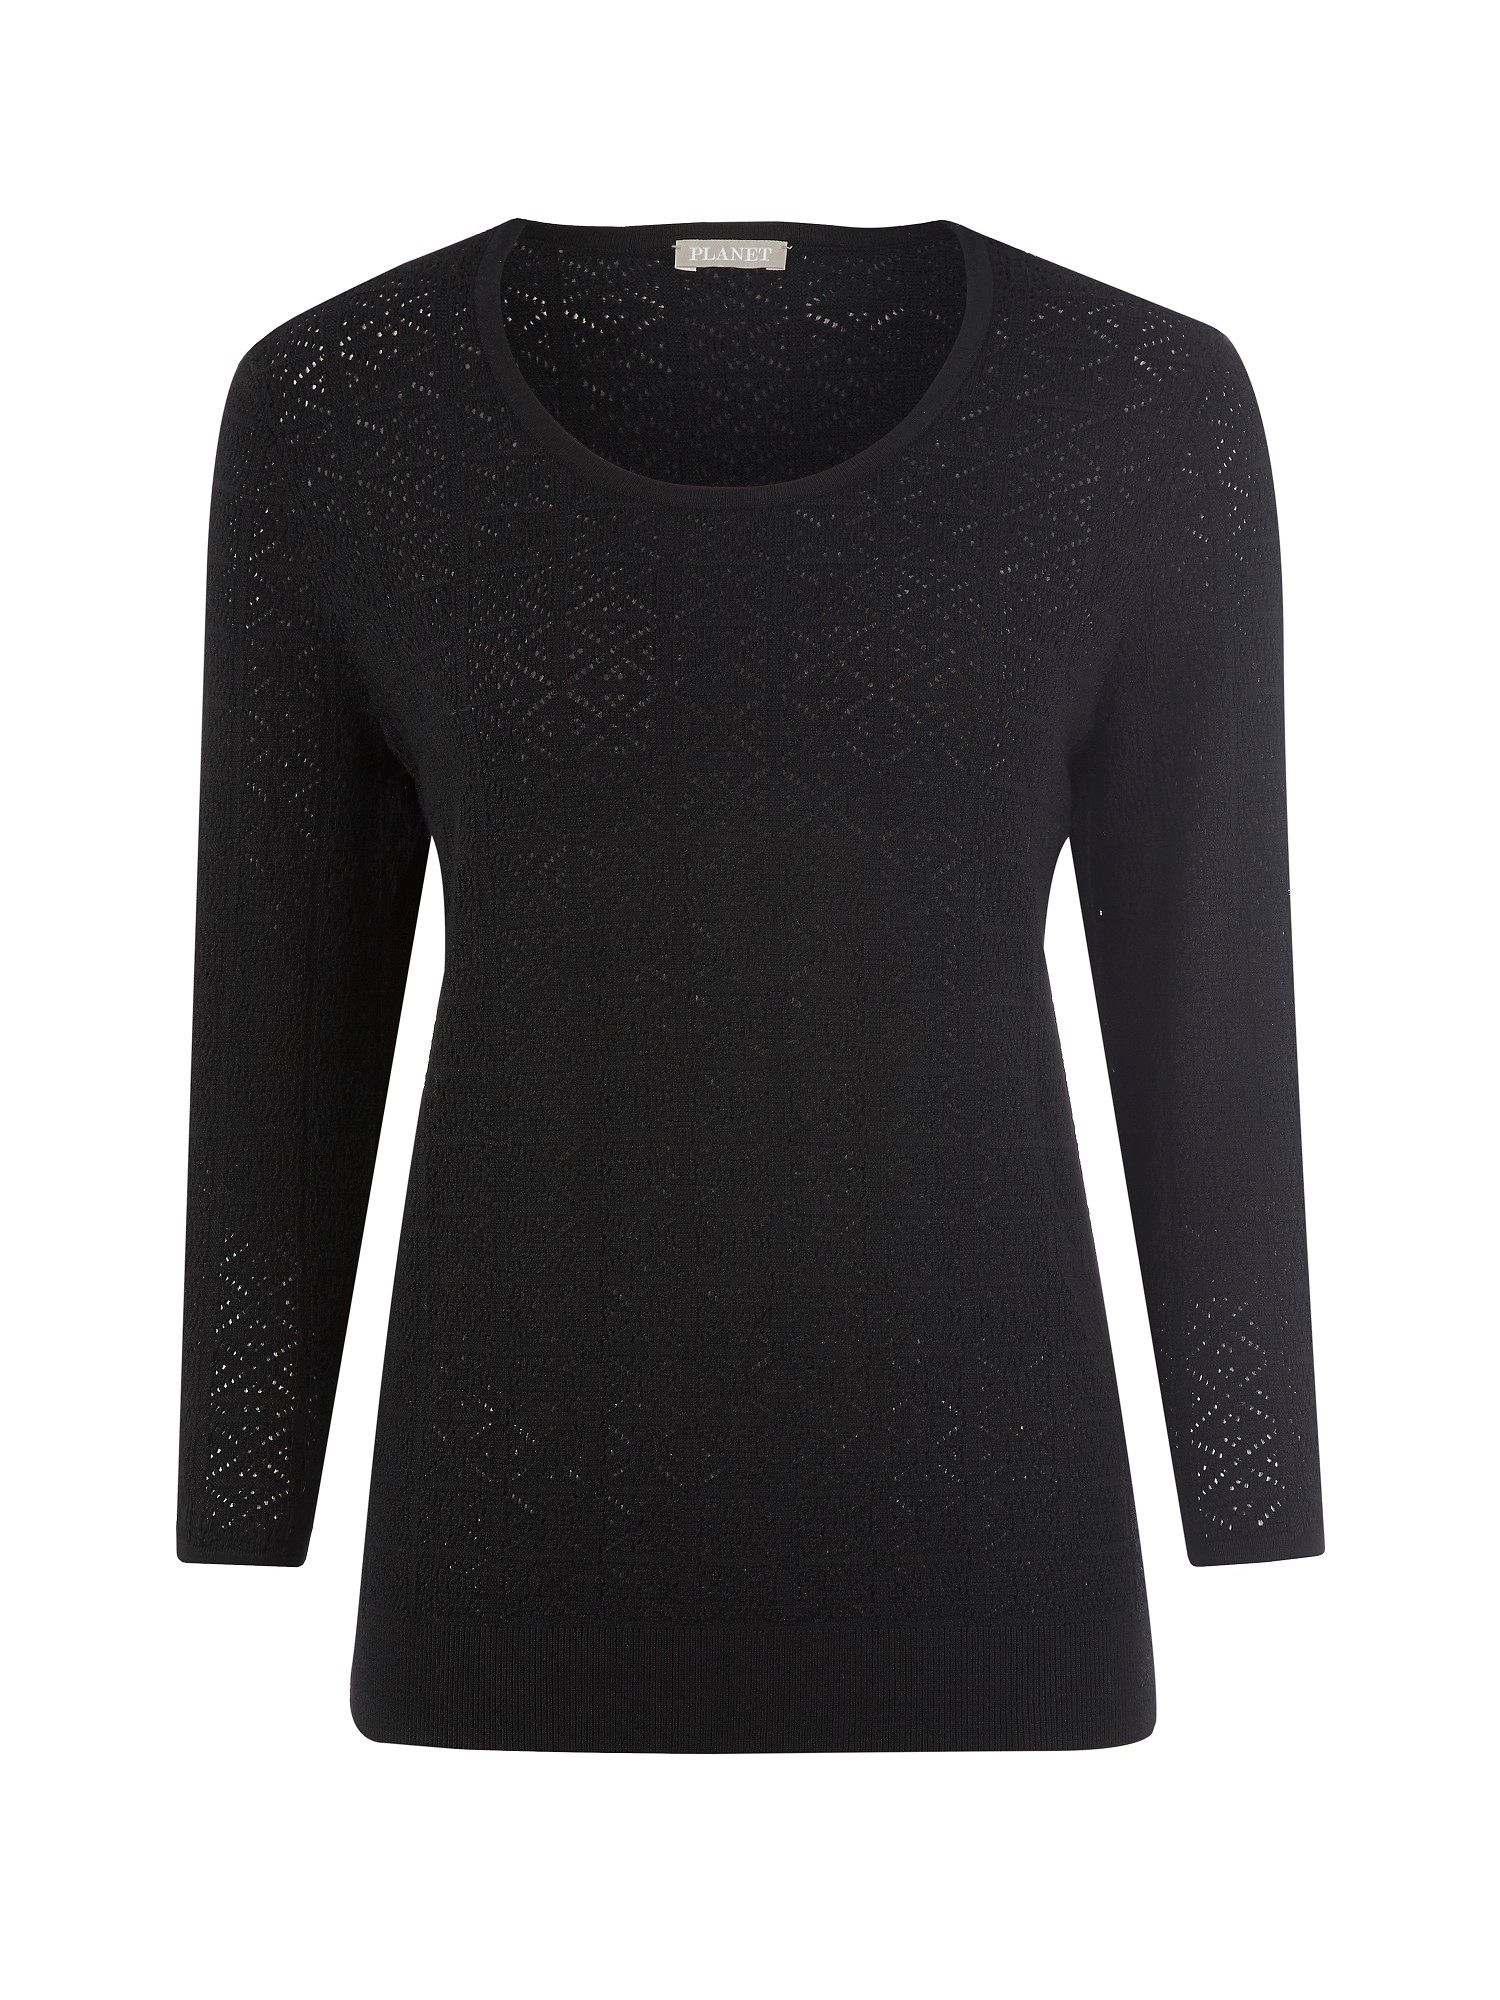 Black pointelle sweater